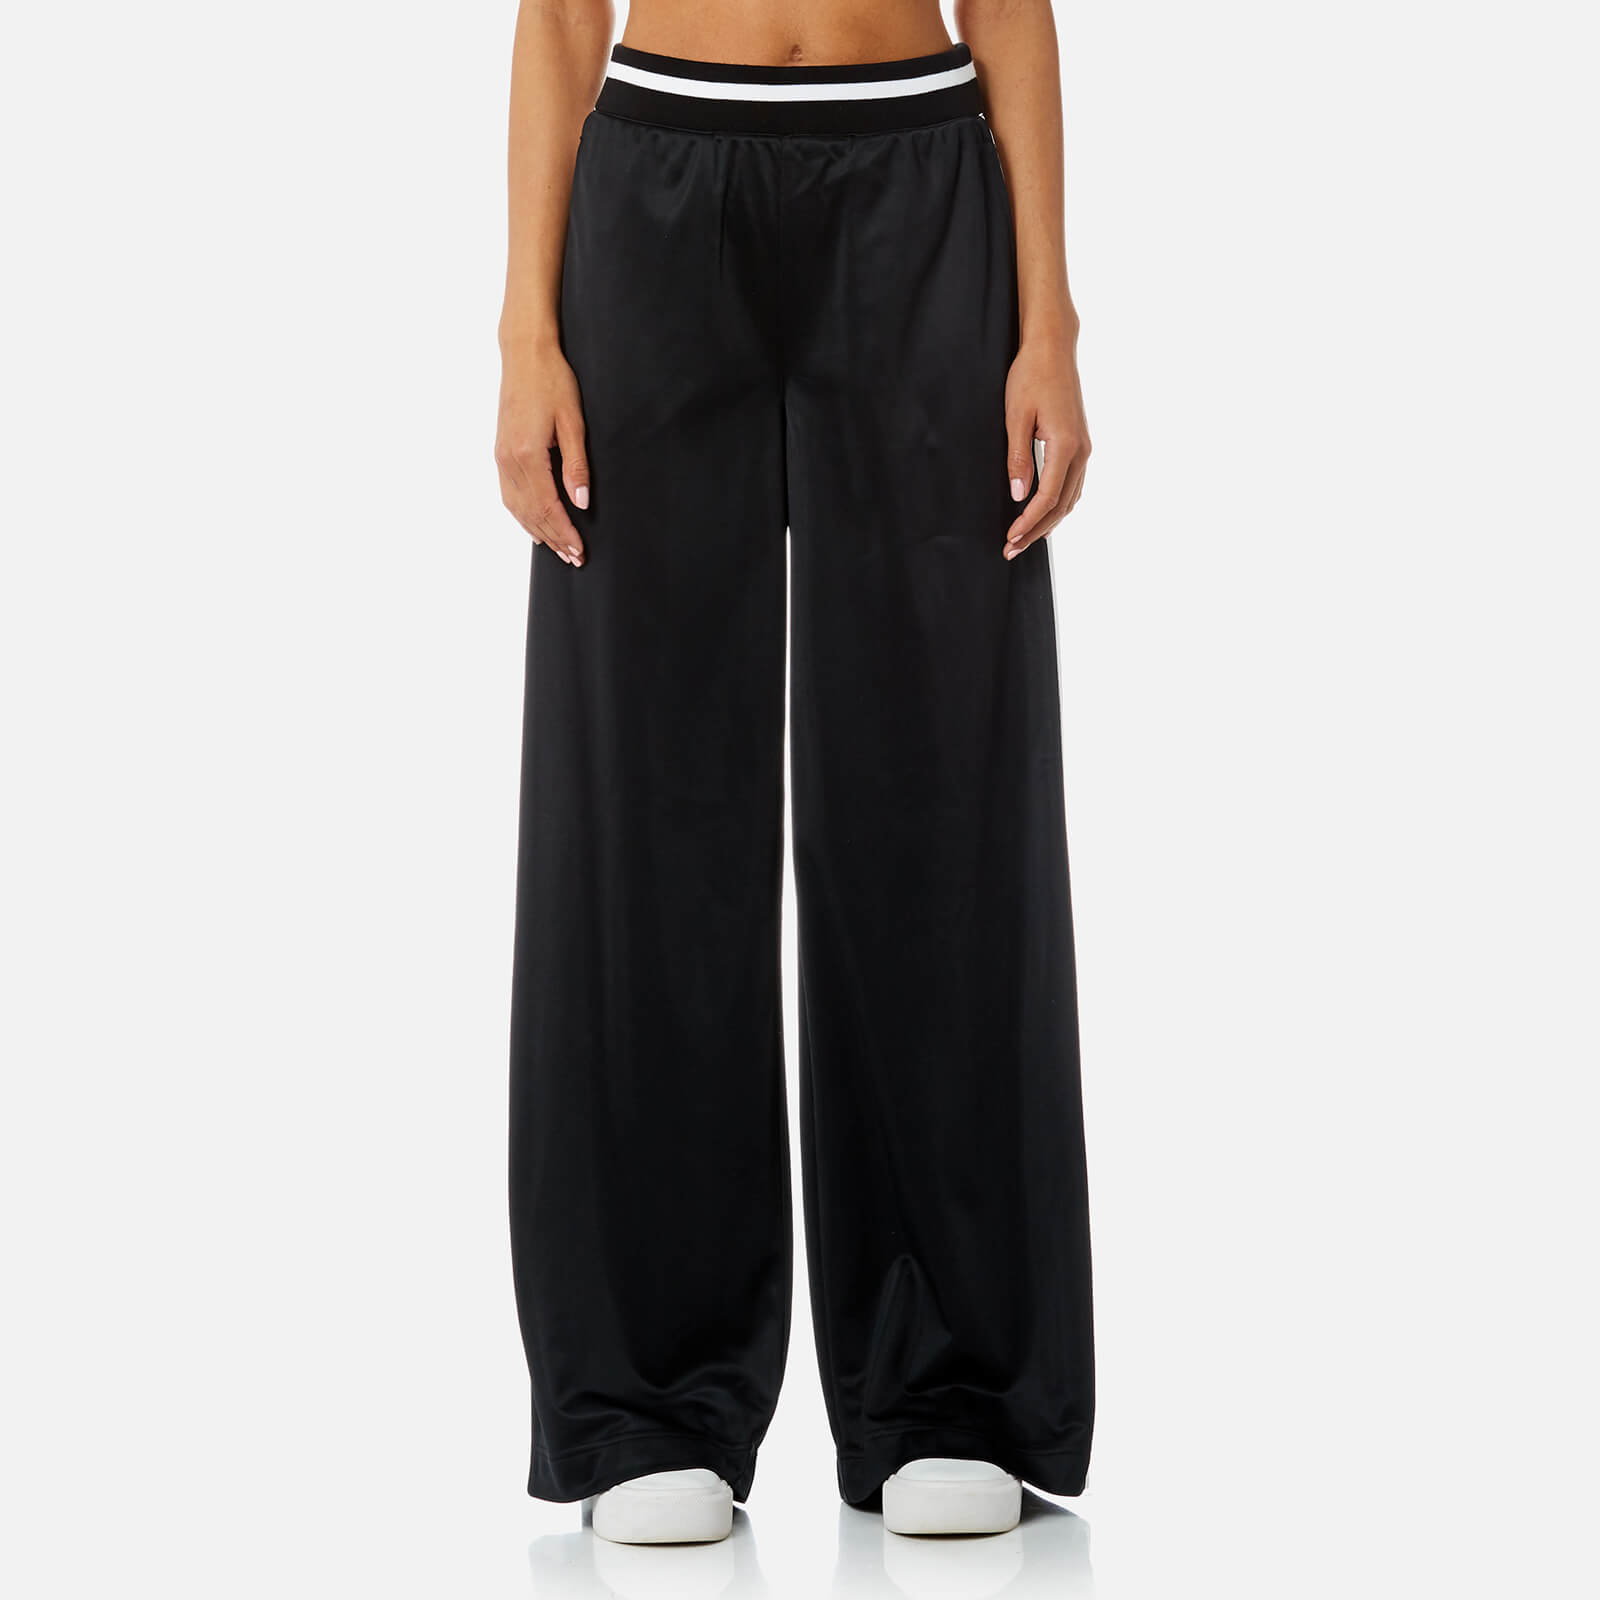 109ed439ecf8a DKNY Sport Women's Track Stripe and Flocked Logo Wide Leg Pants - Black -  Free UK Delivery over £50